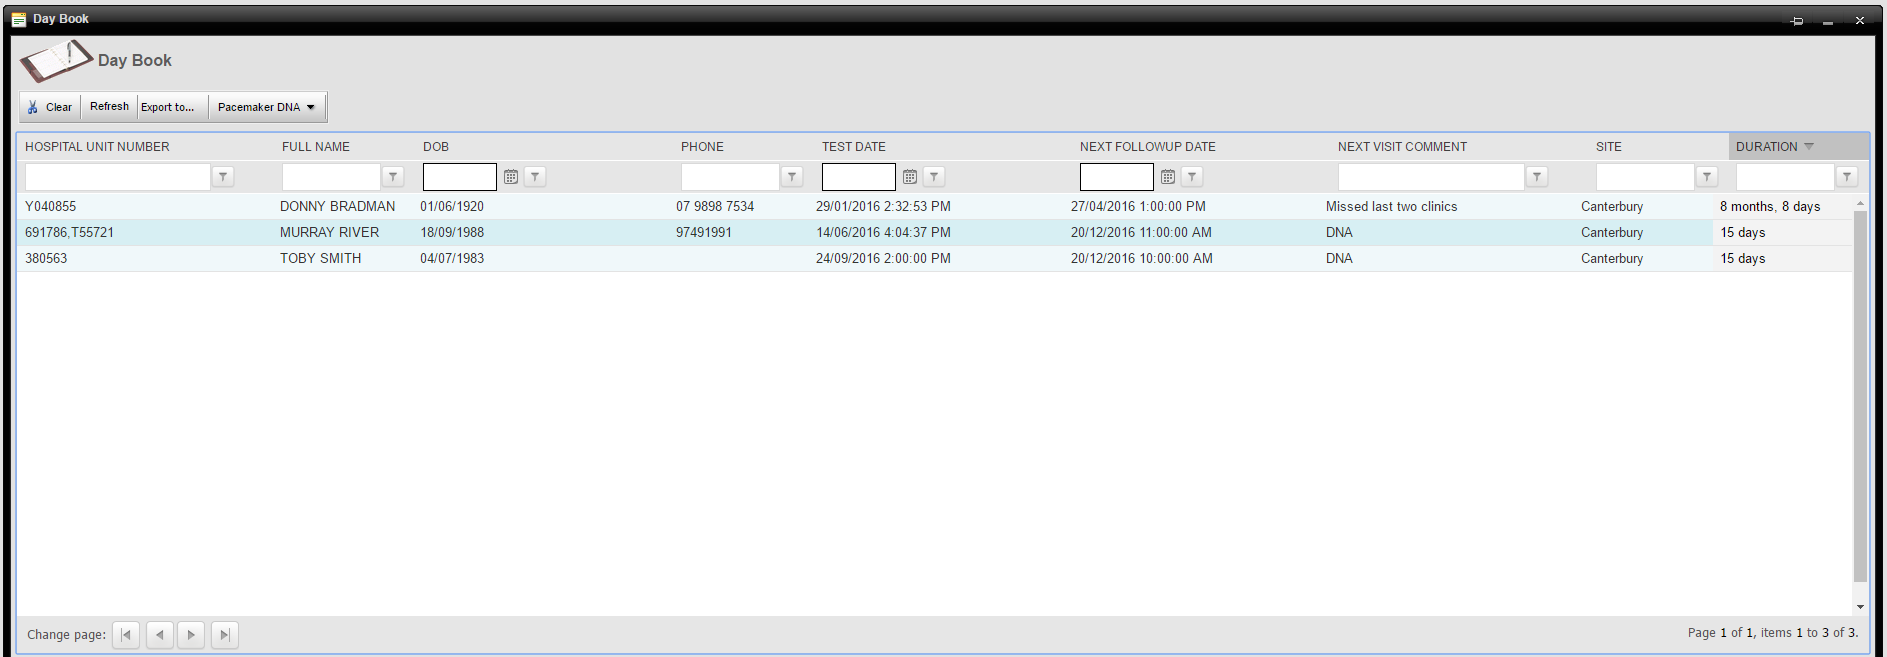 Screenshot of Cardiobase Daybook report